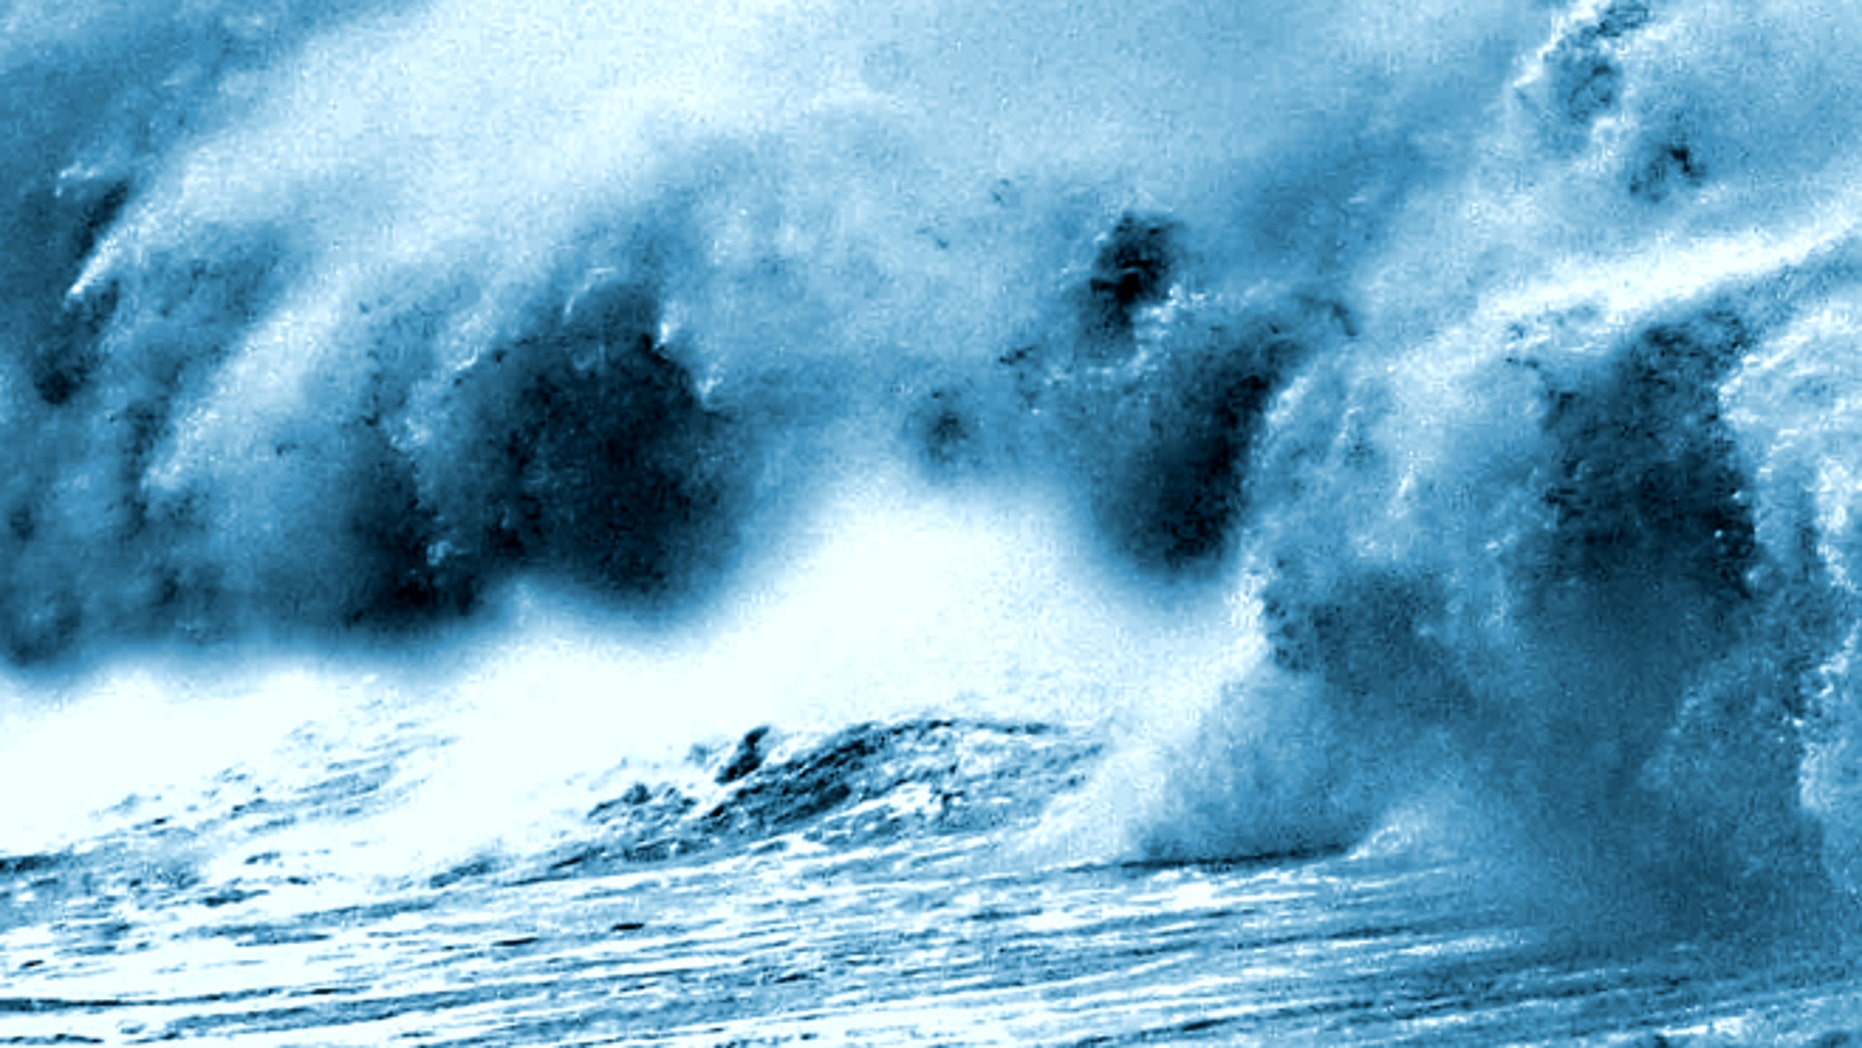 May 25, 2001: A giant wave lashes a popular promenade in Bombay, India.